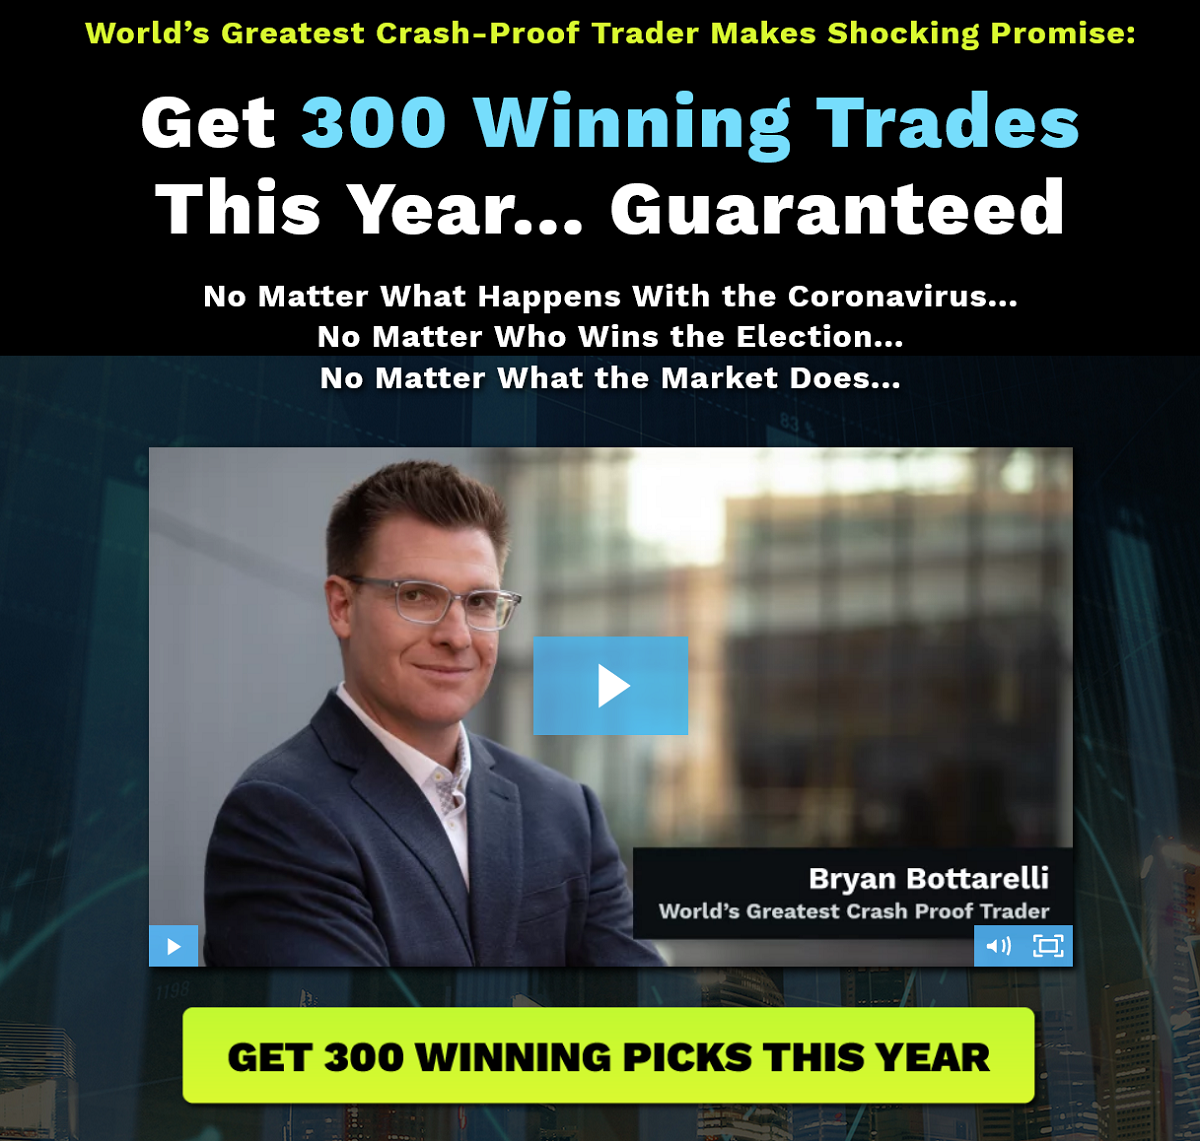 Bryan Bottarelli War Room Review: Overnight Trades Legit or Scam?